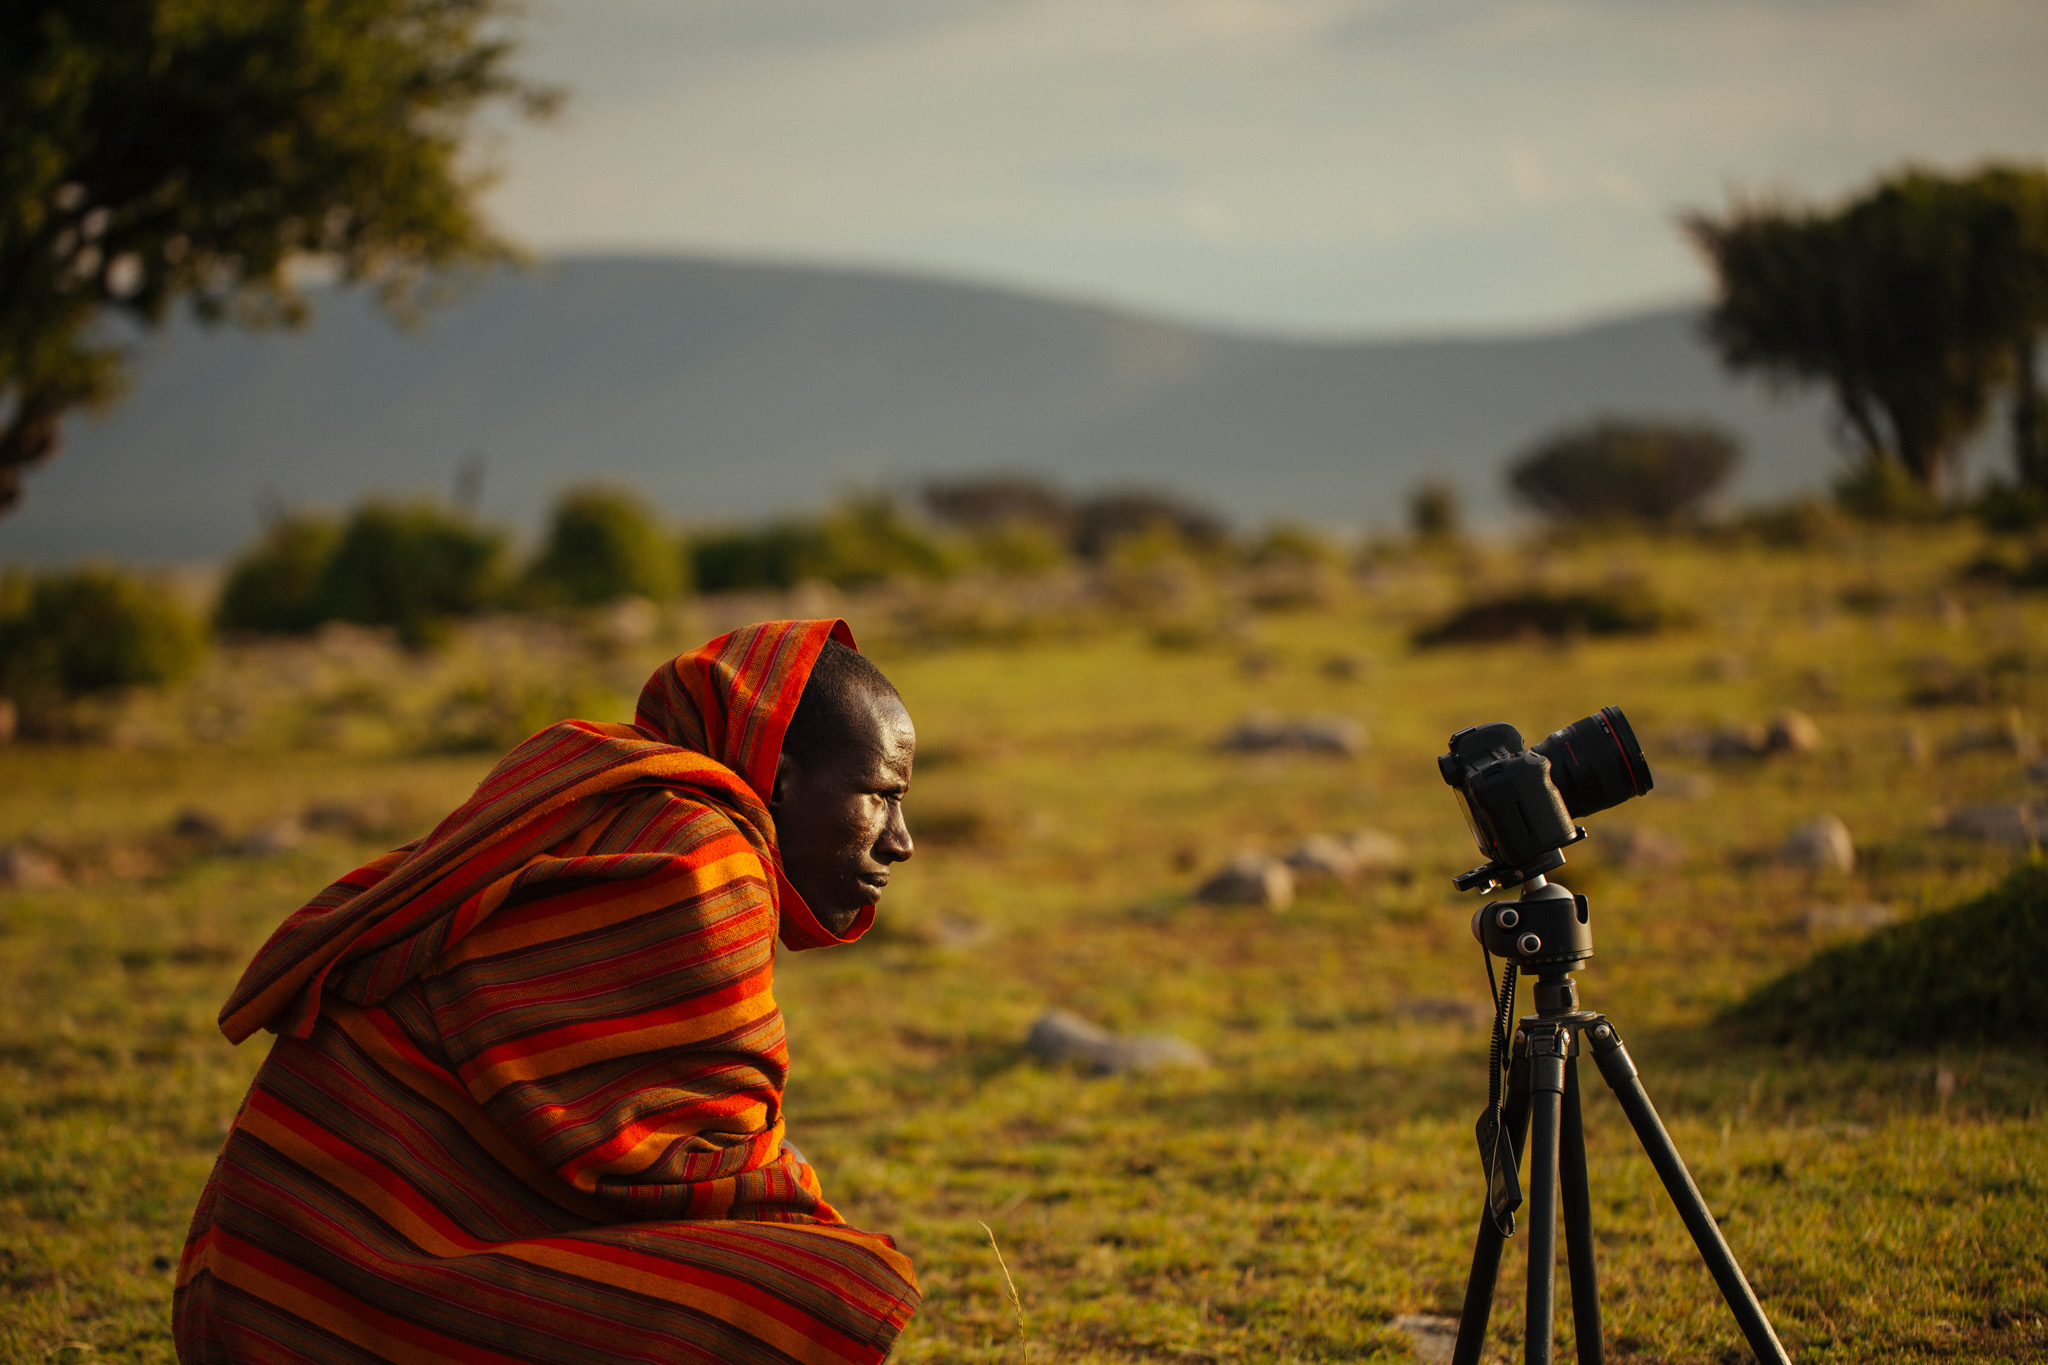 A Maasai native looking at our time-lapse capture.